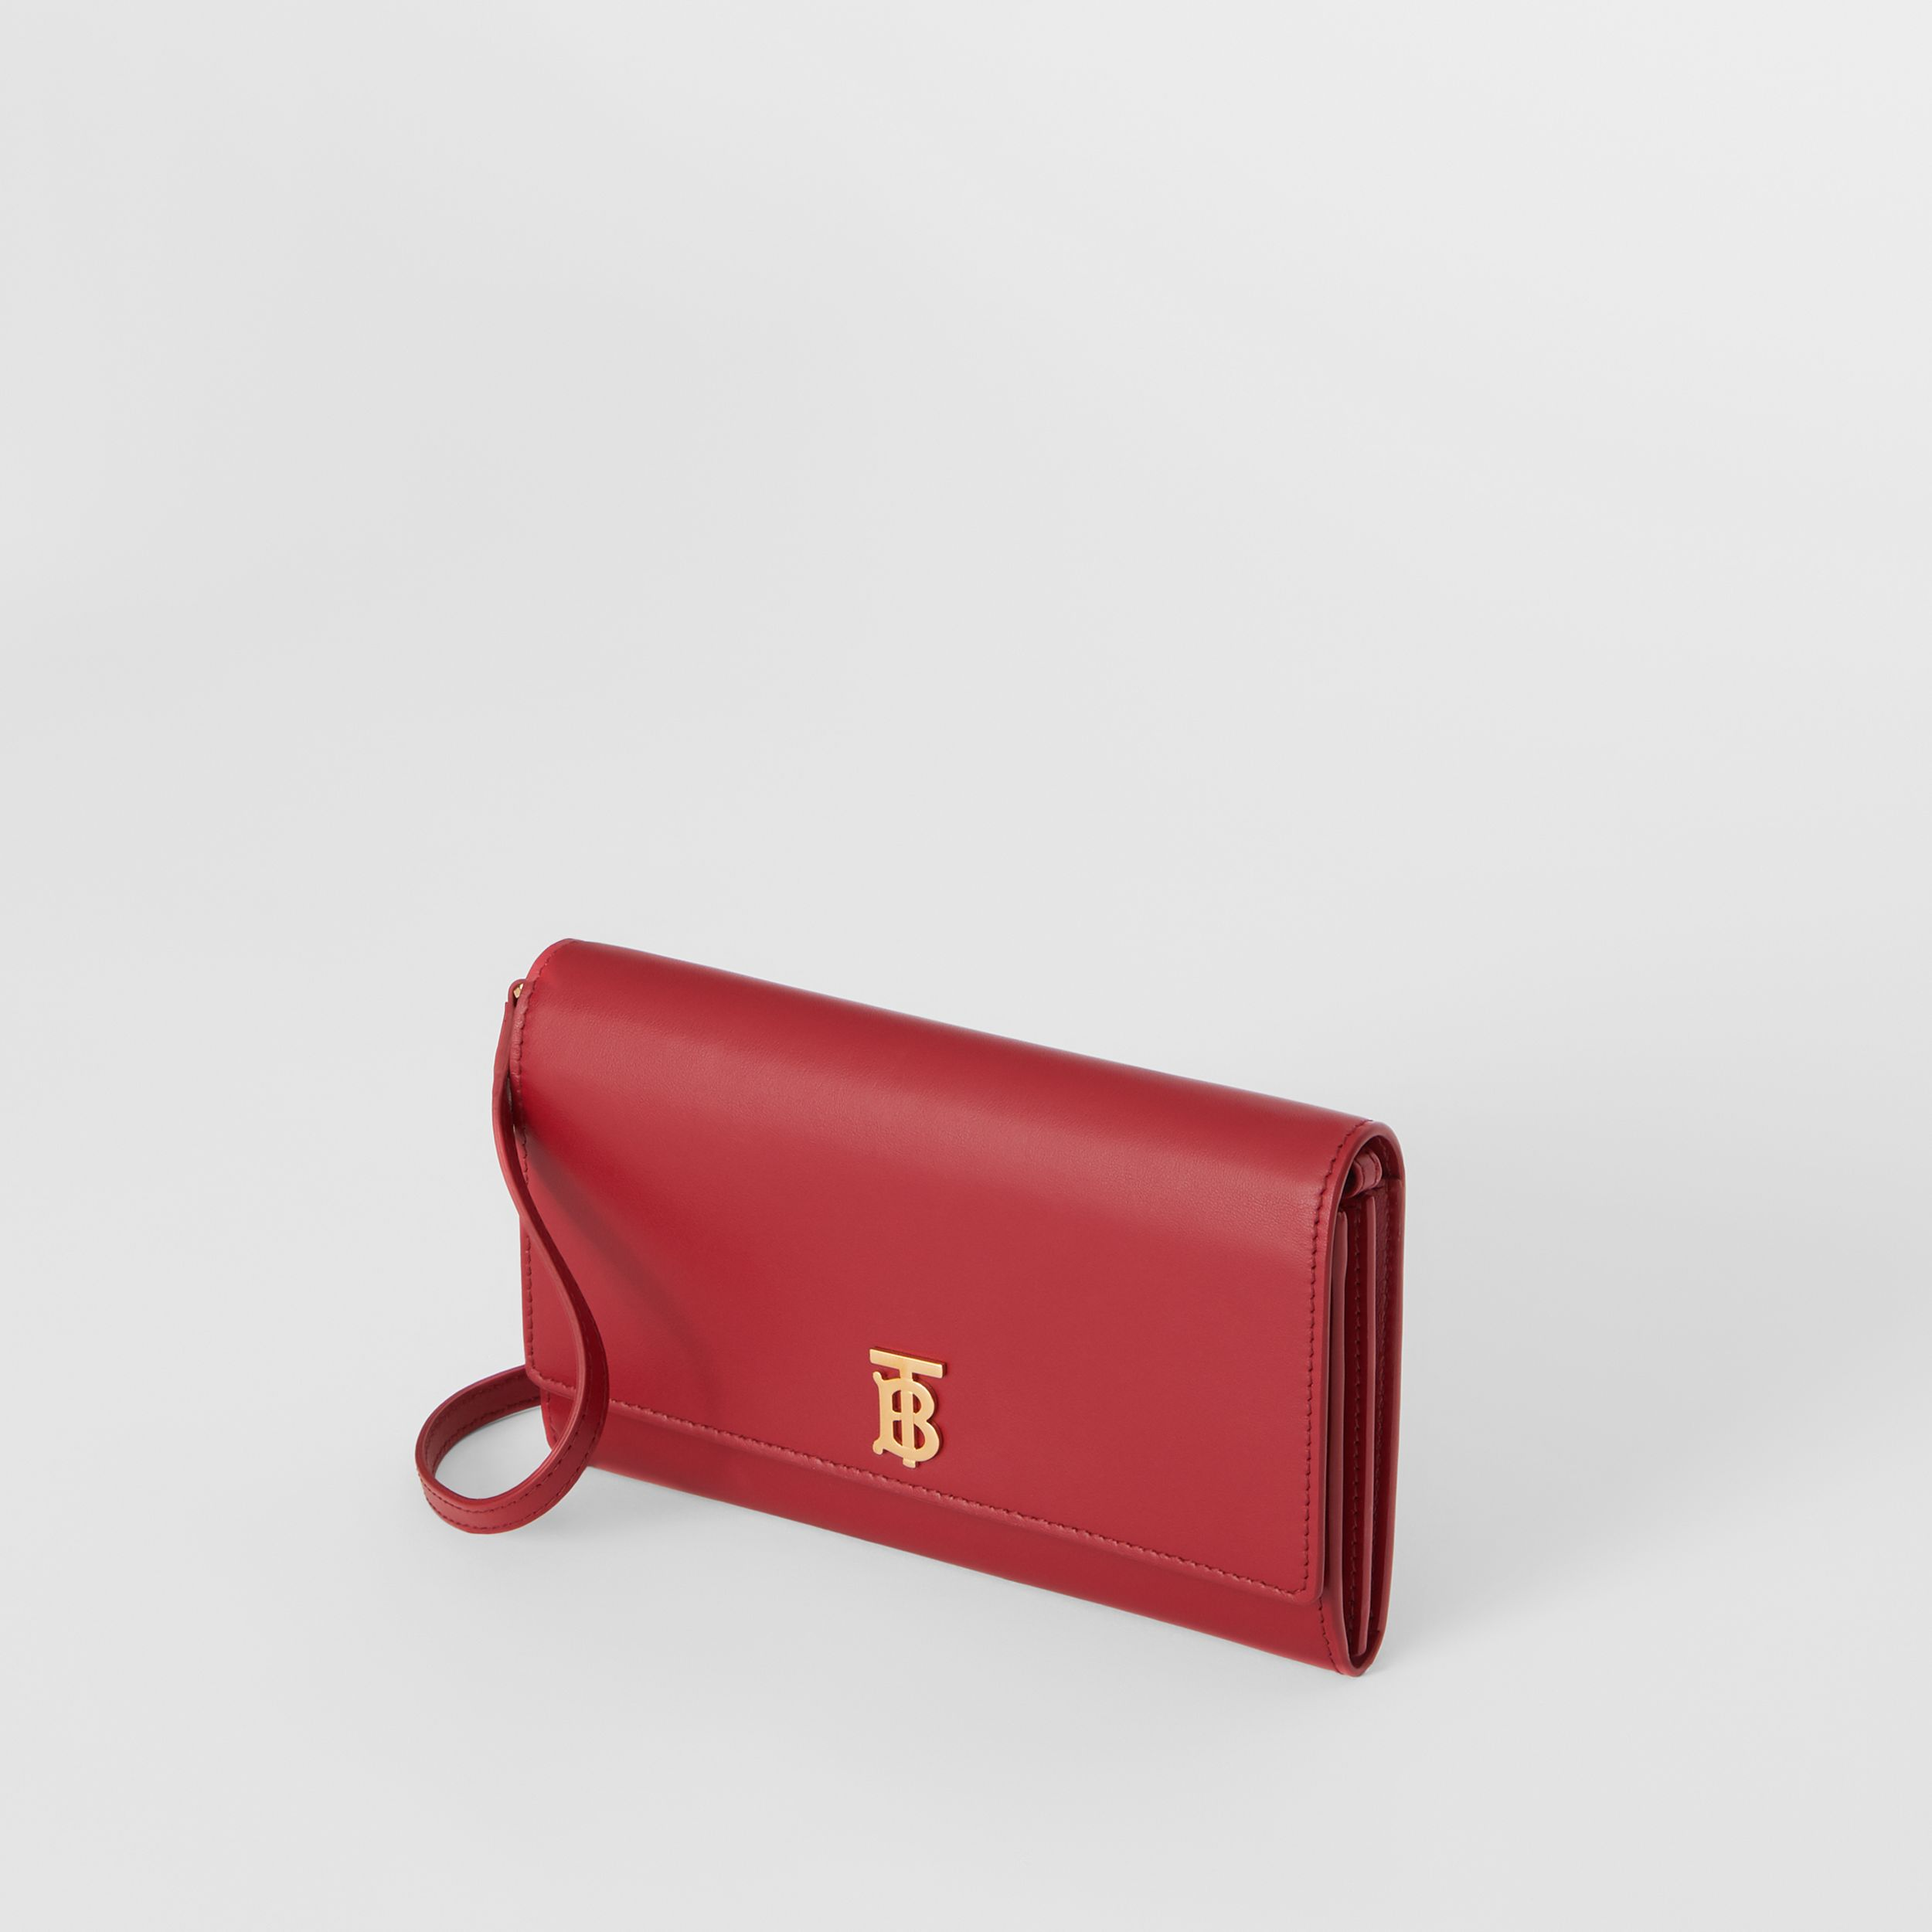 Monogram Motif Leather Wallet with Detachable Strap in Crimson - Women | Burberry - 4